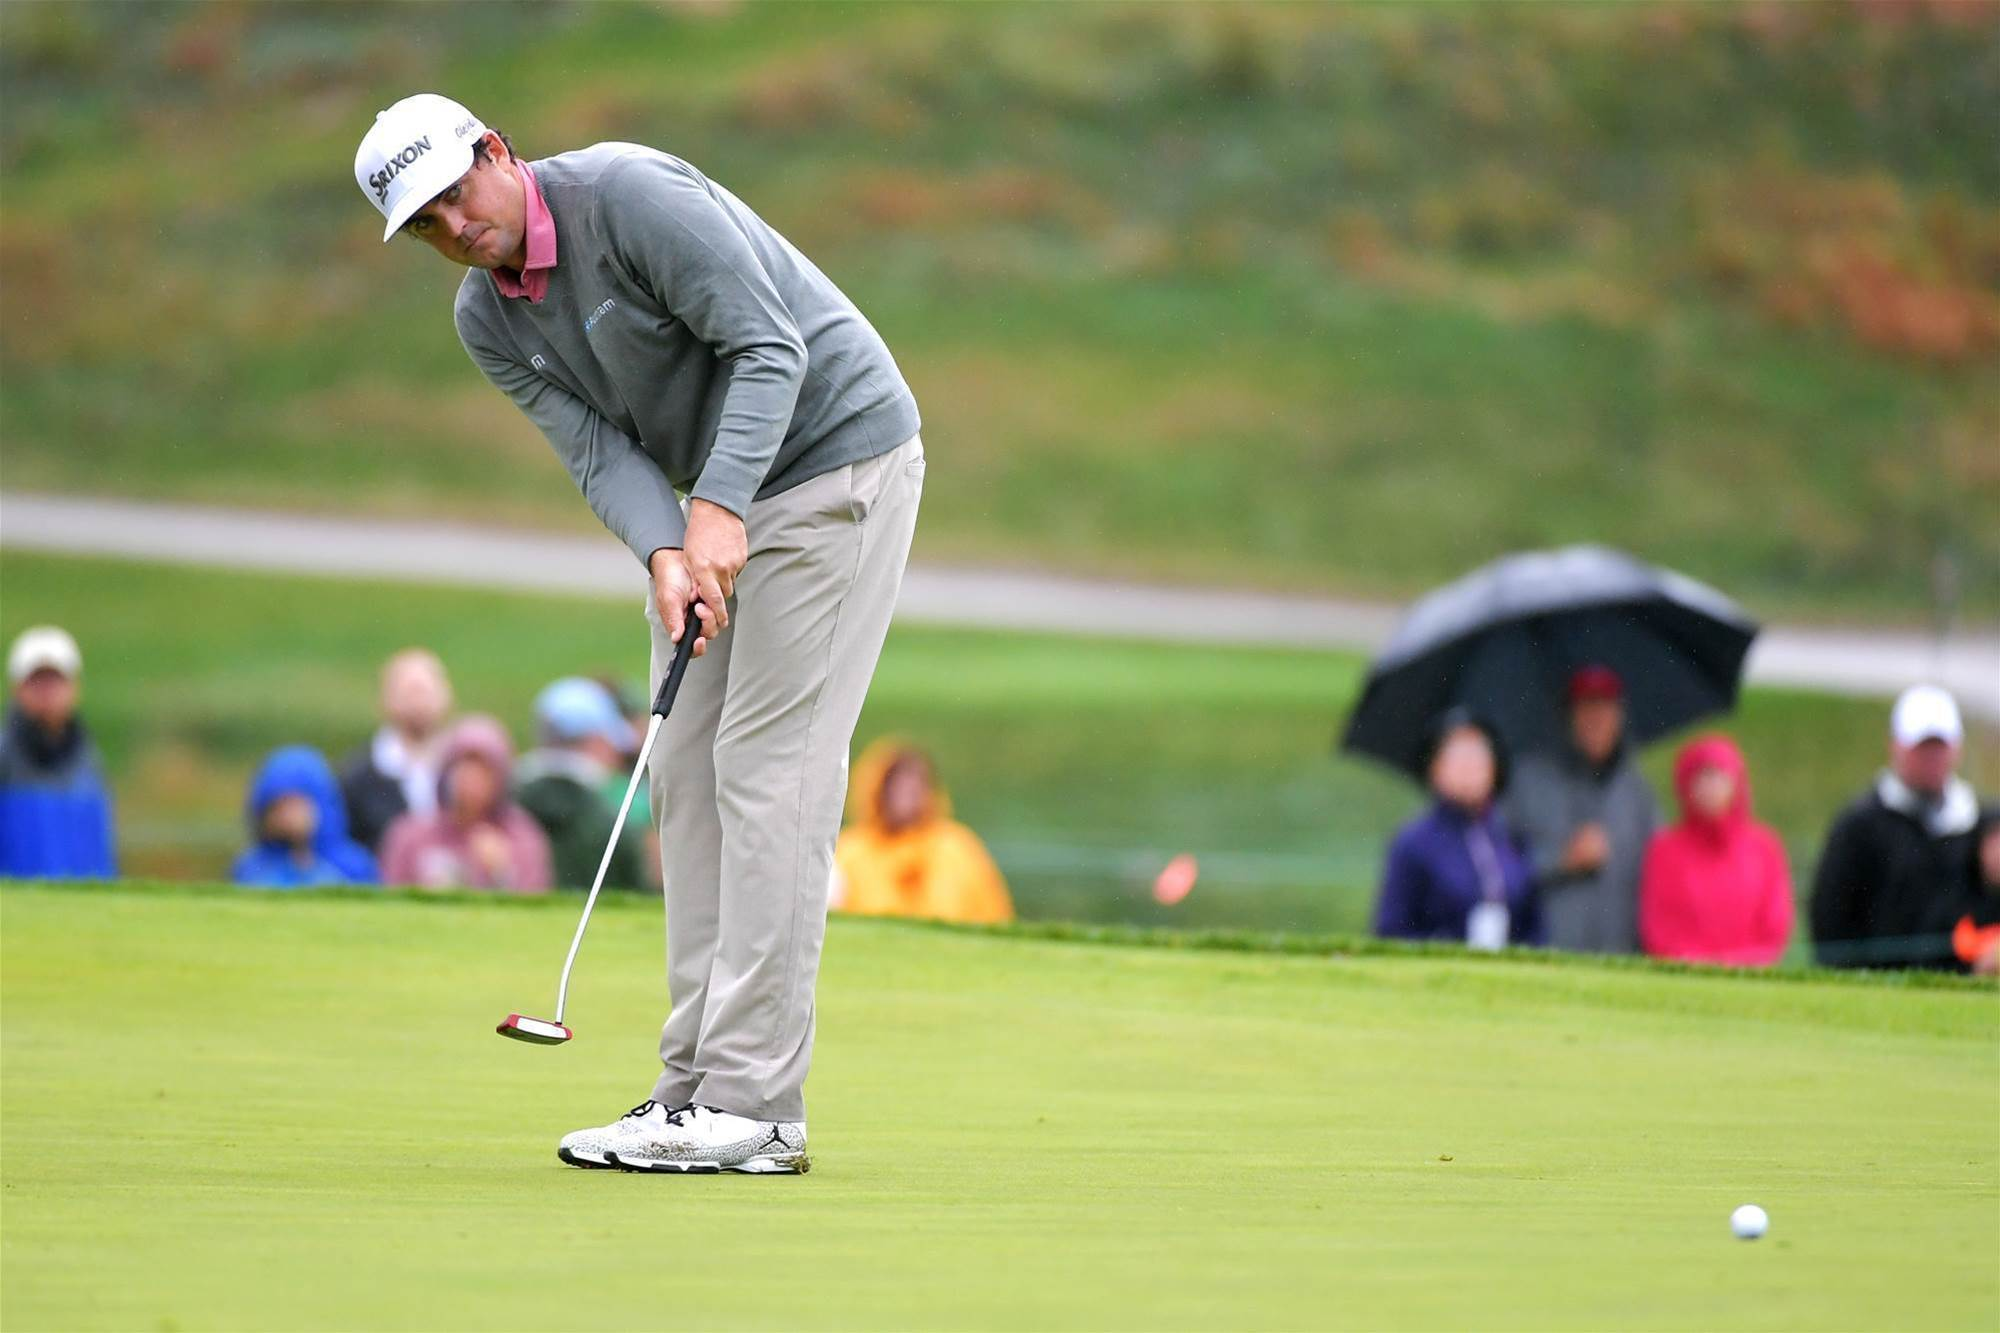 Keegan Bradley rolling towards Sydney